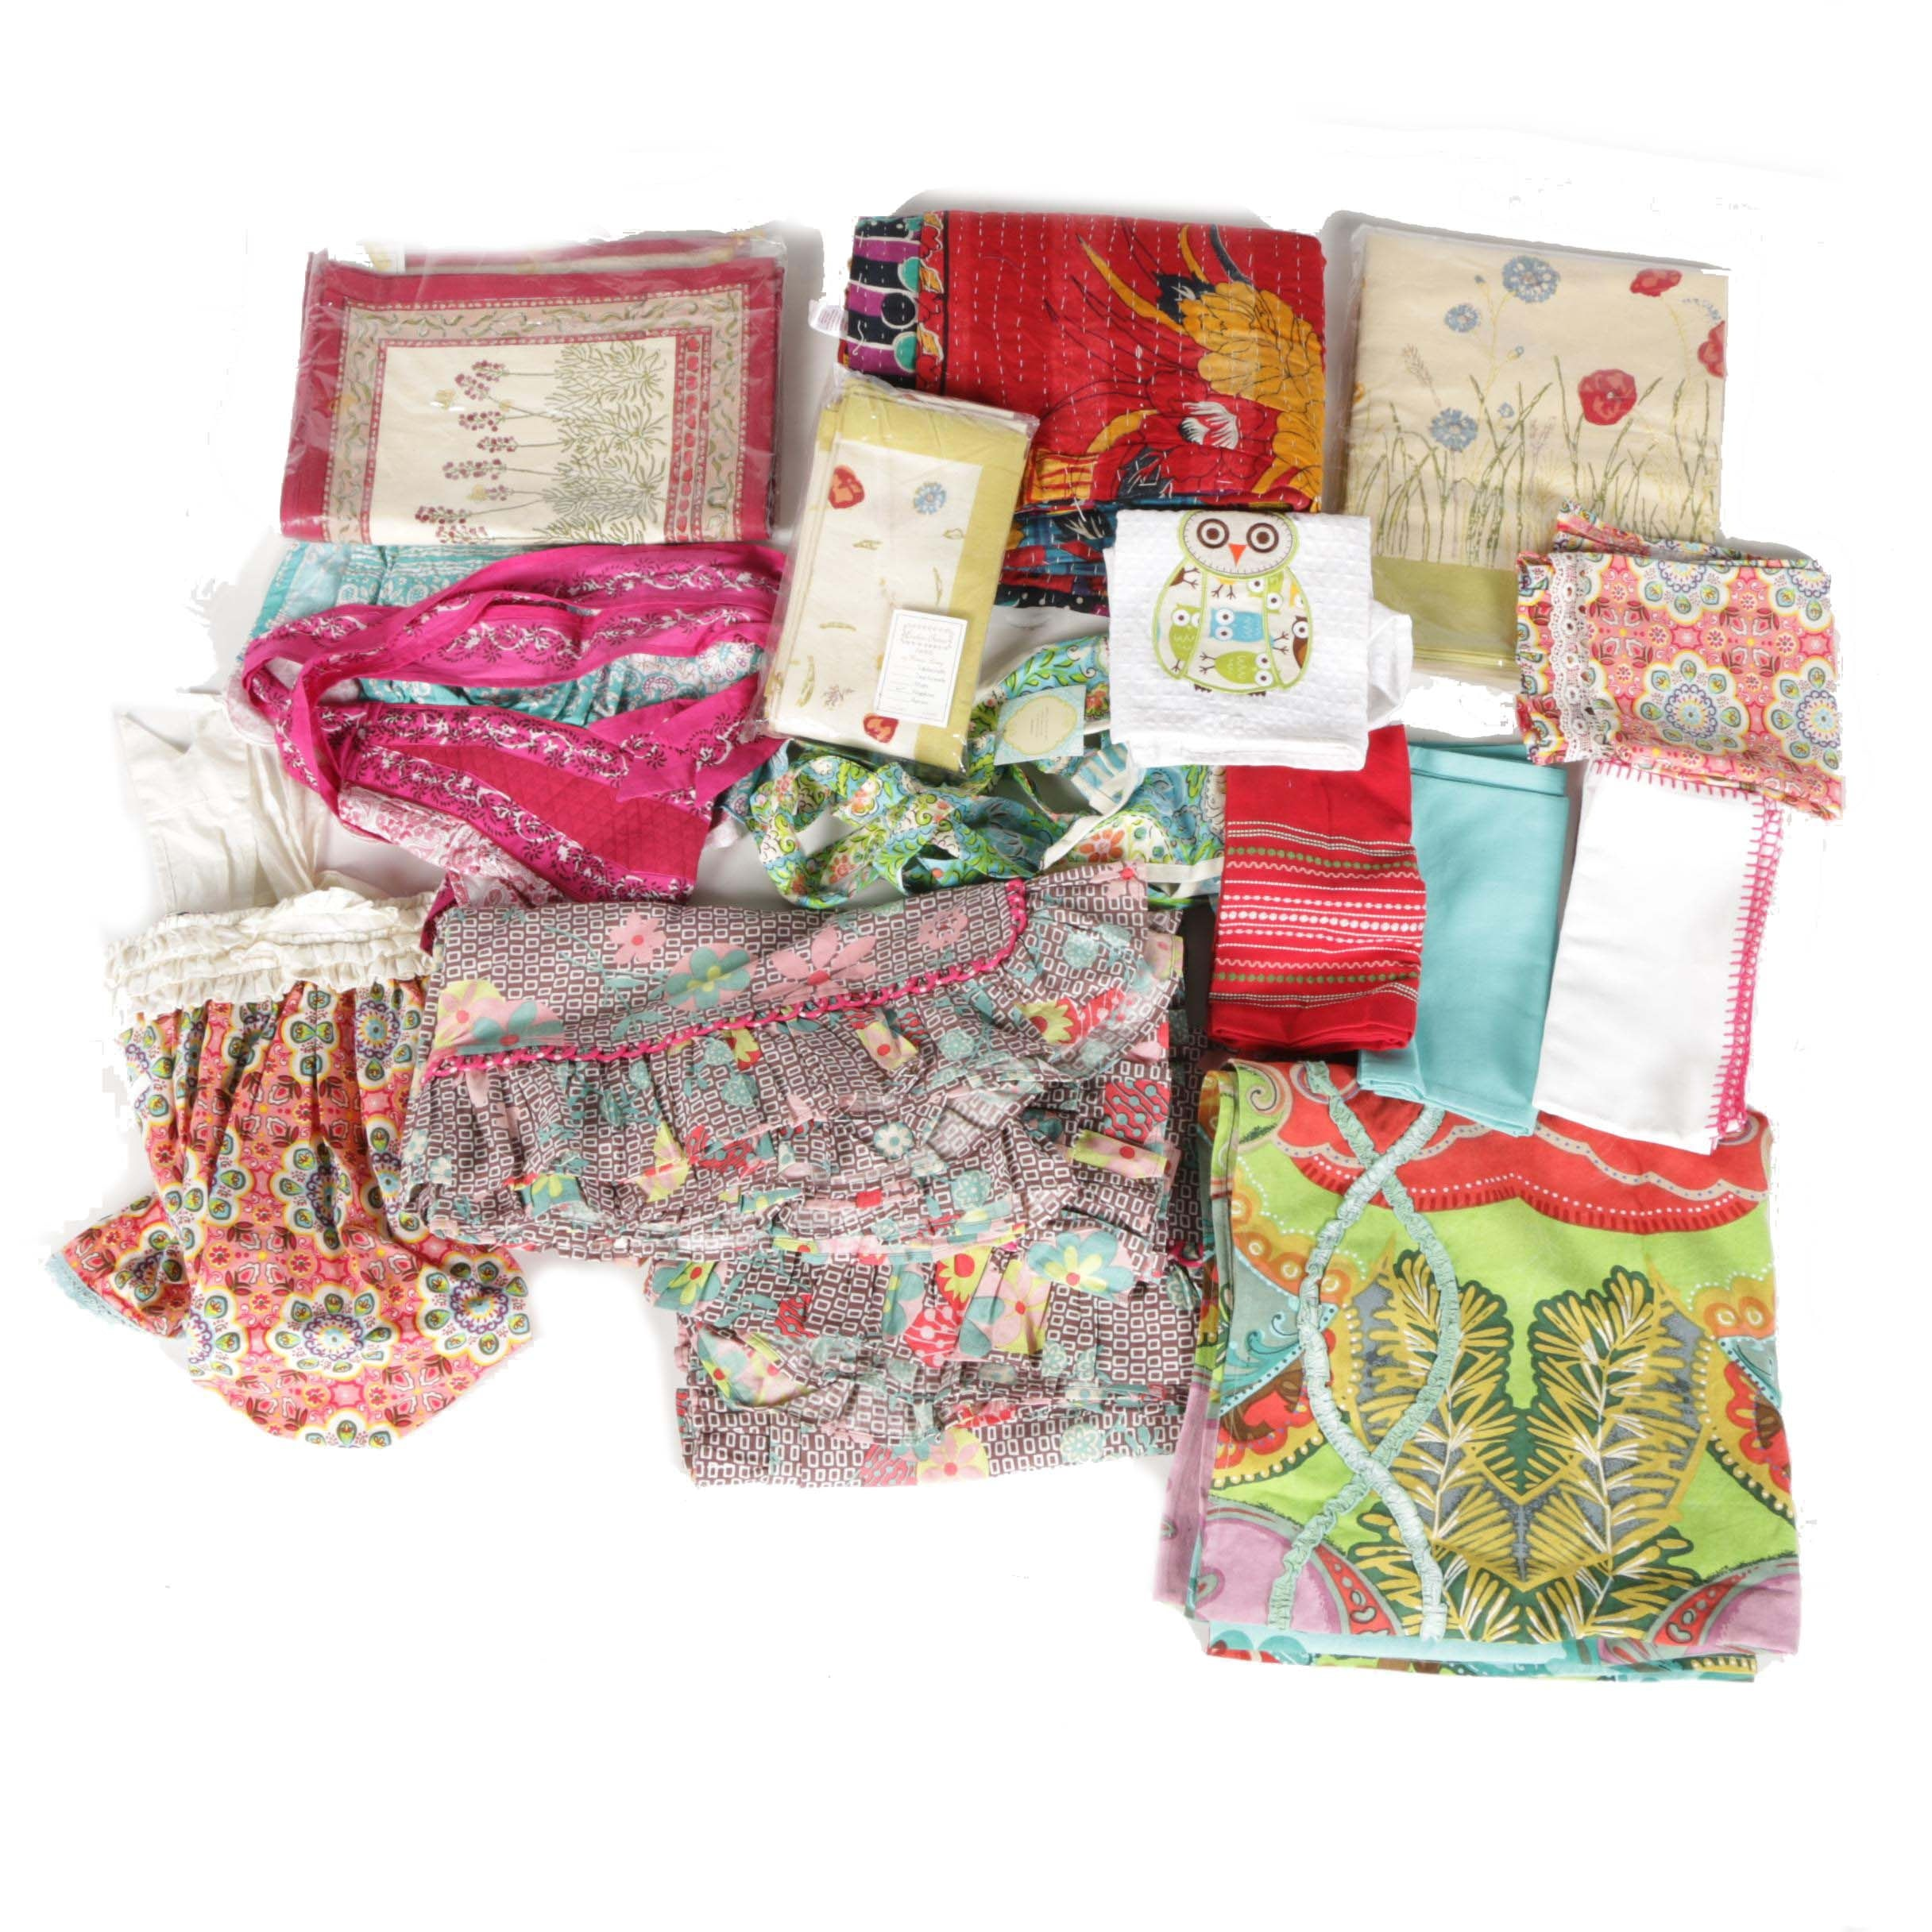 Vintage Linens and Aprons